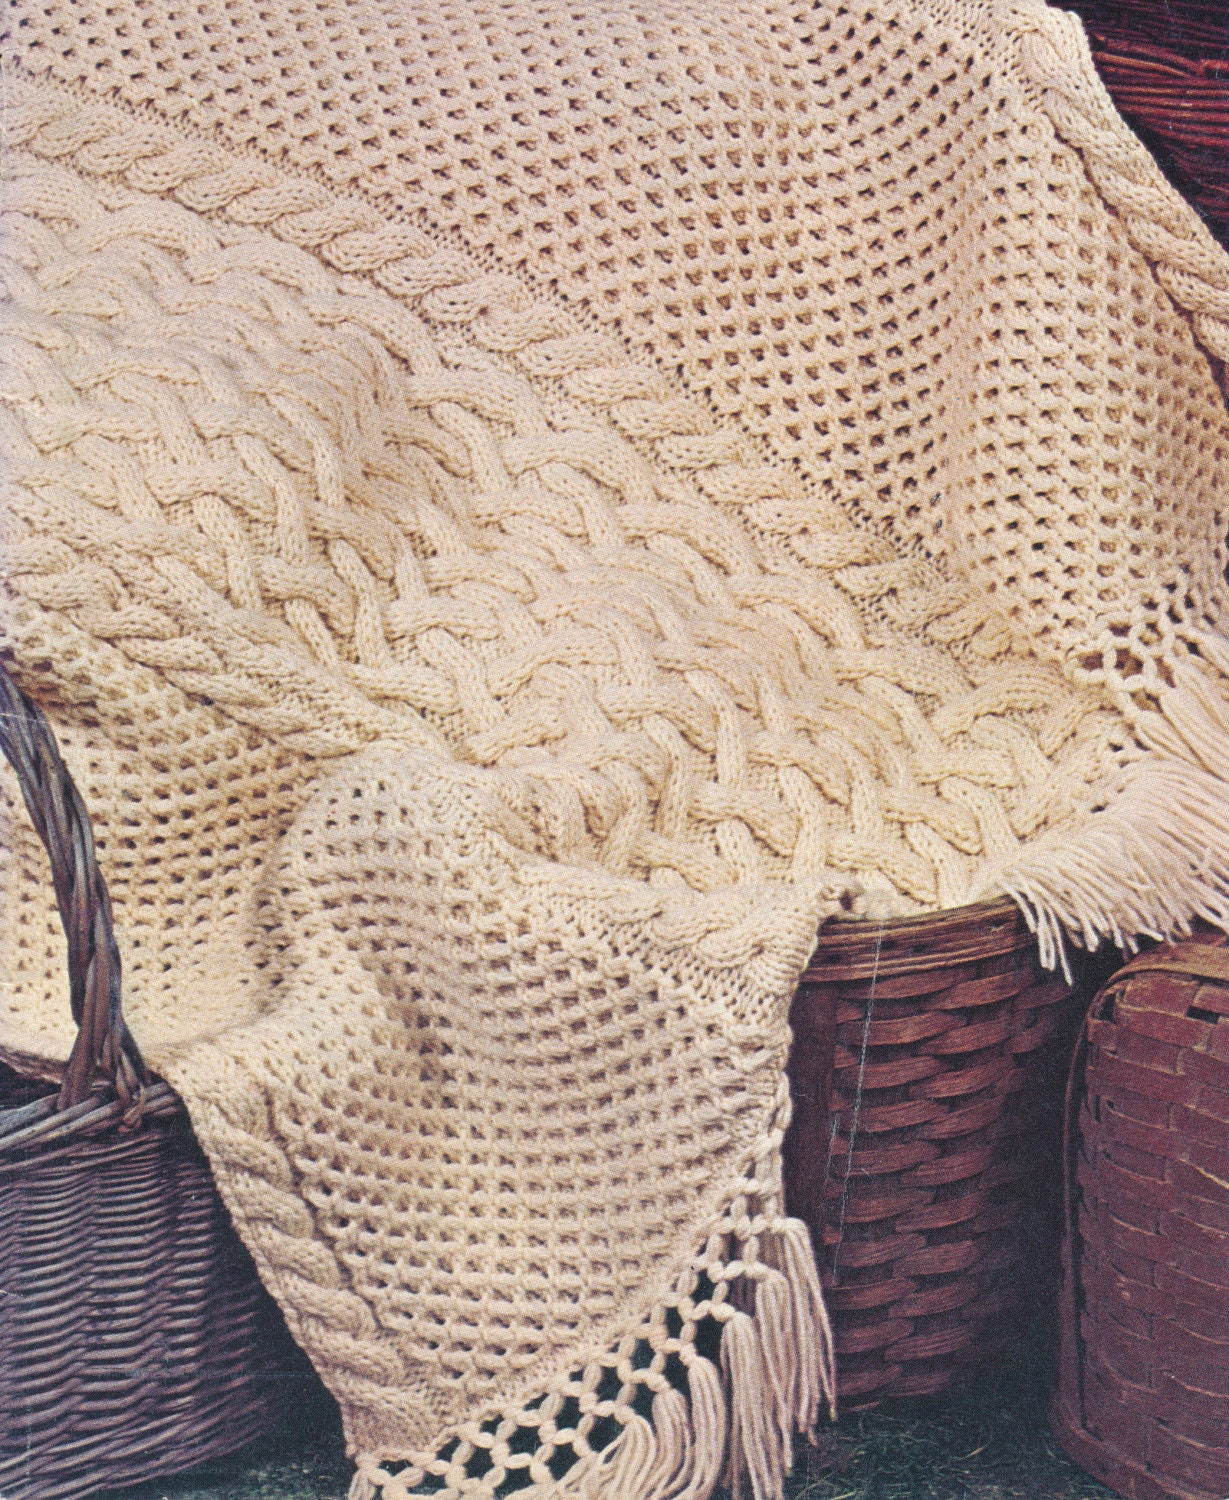 Super Cozy Knit Cable and Lattice Afghan Blanket Knitting